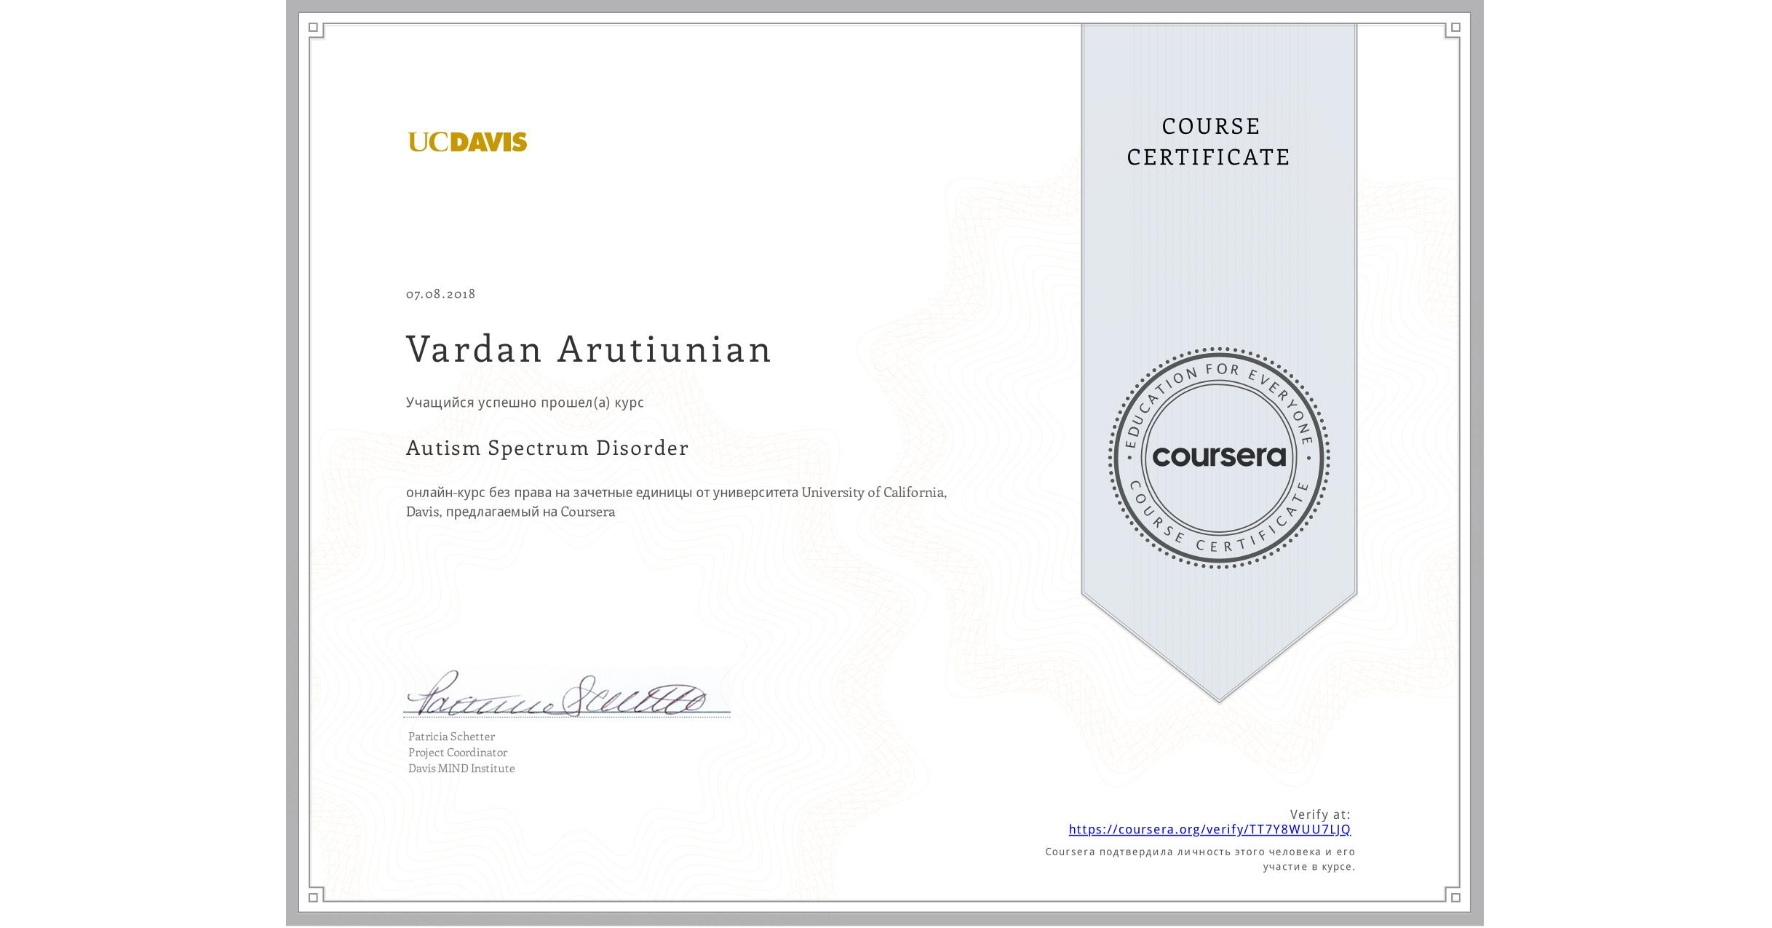 View certificate for Vardan Arutiunian, Autism Spectrum Disorder, an online non-credit course authorized by University of California, Davis and offered through Coursera